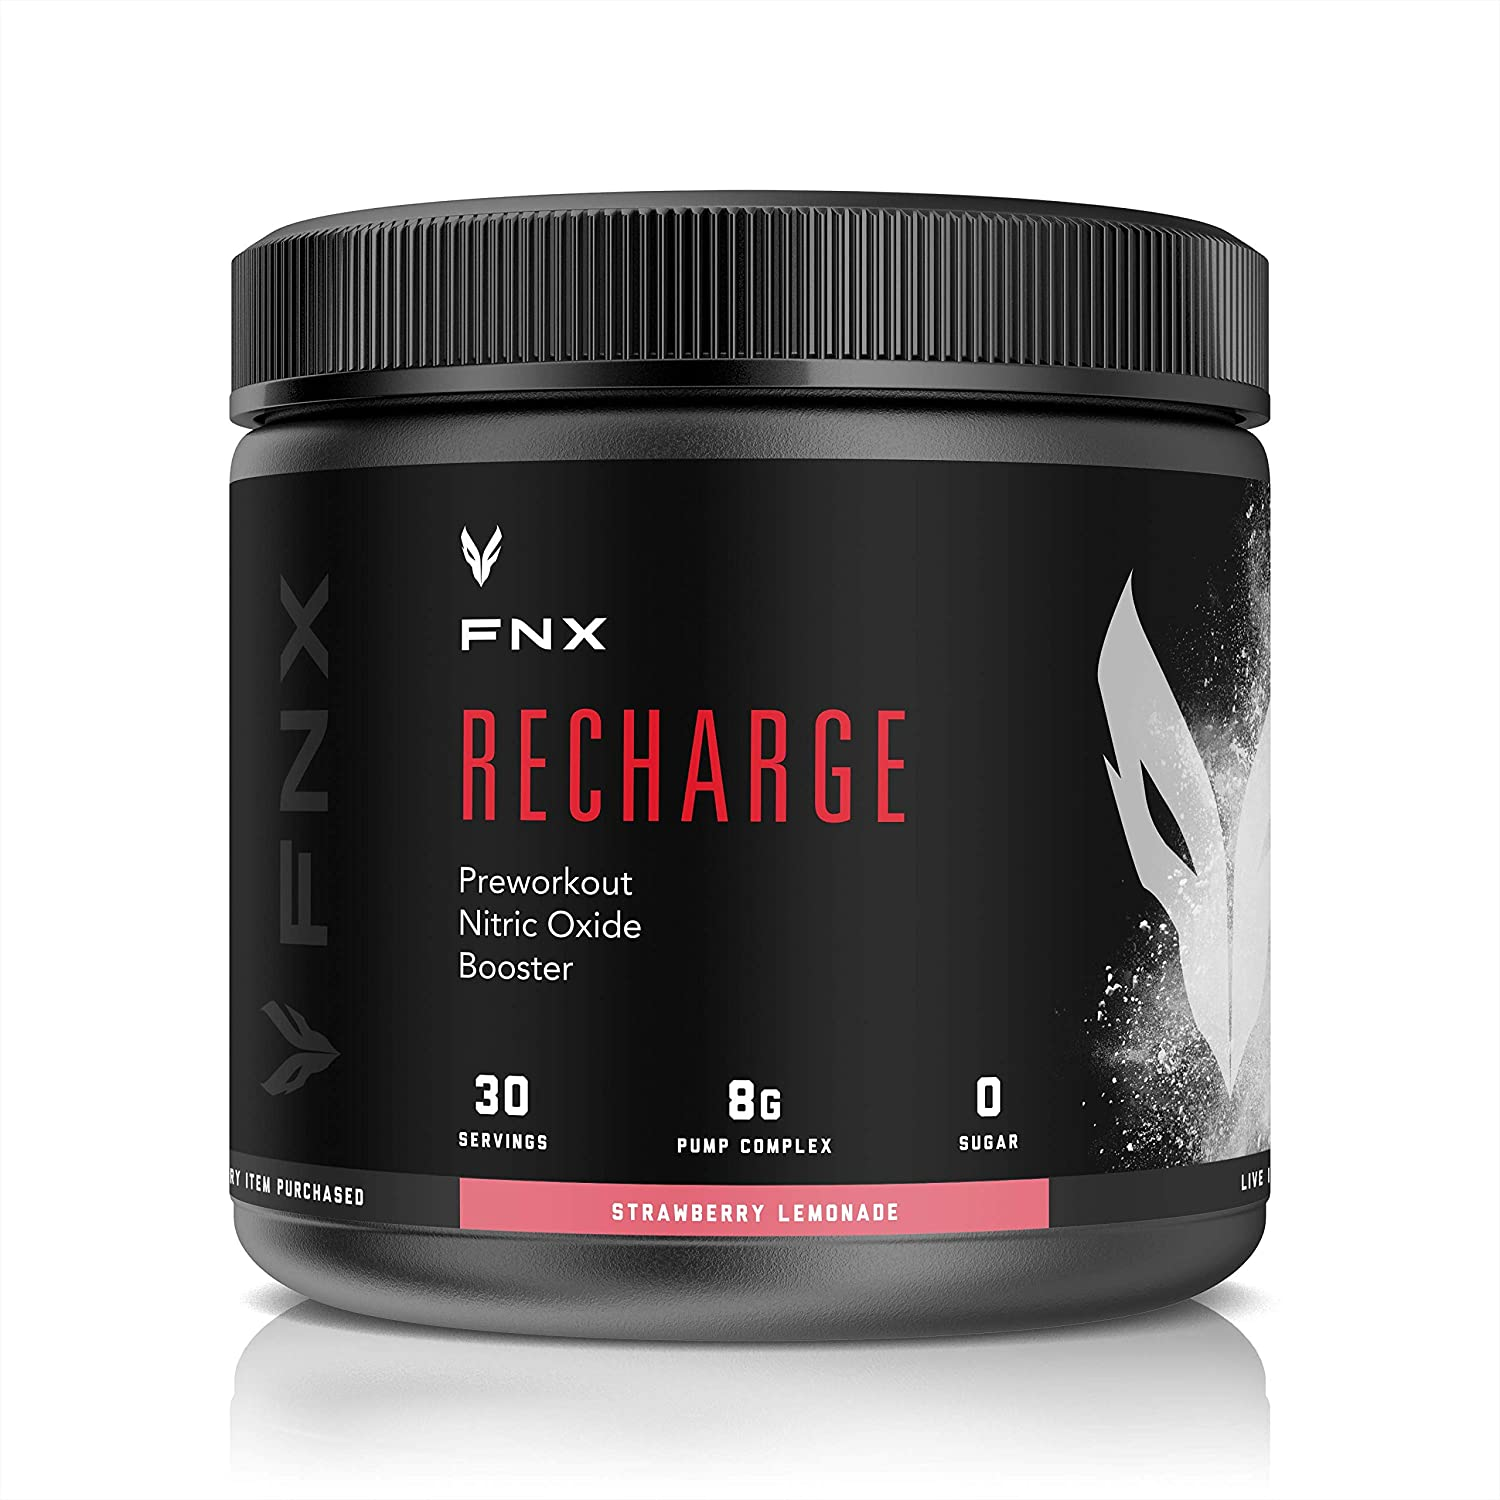 FNX Recharge PreWorkout Nitric Oxide Booster Strawberry Lemonade